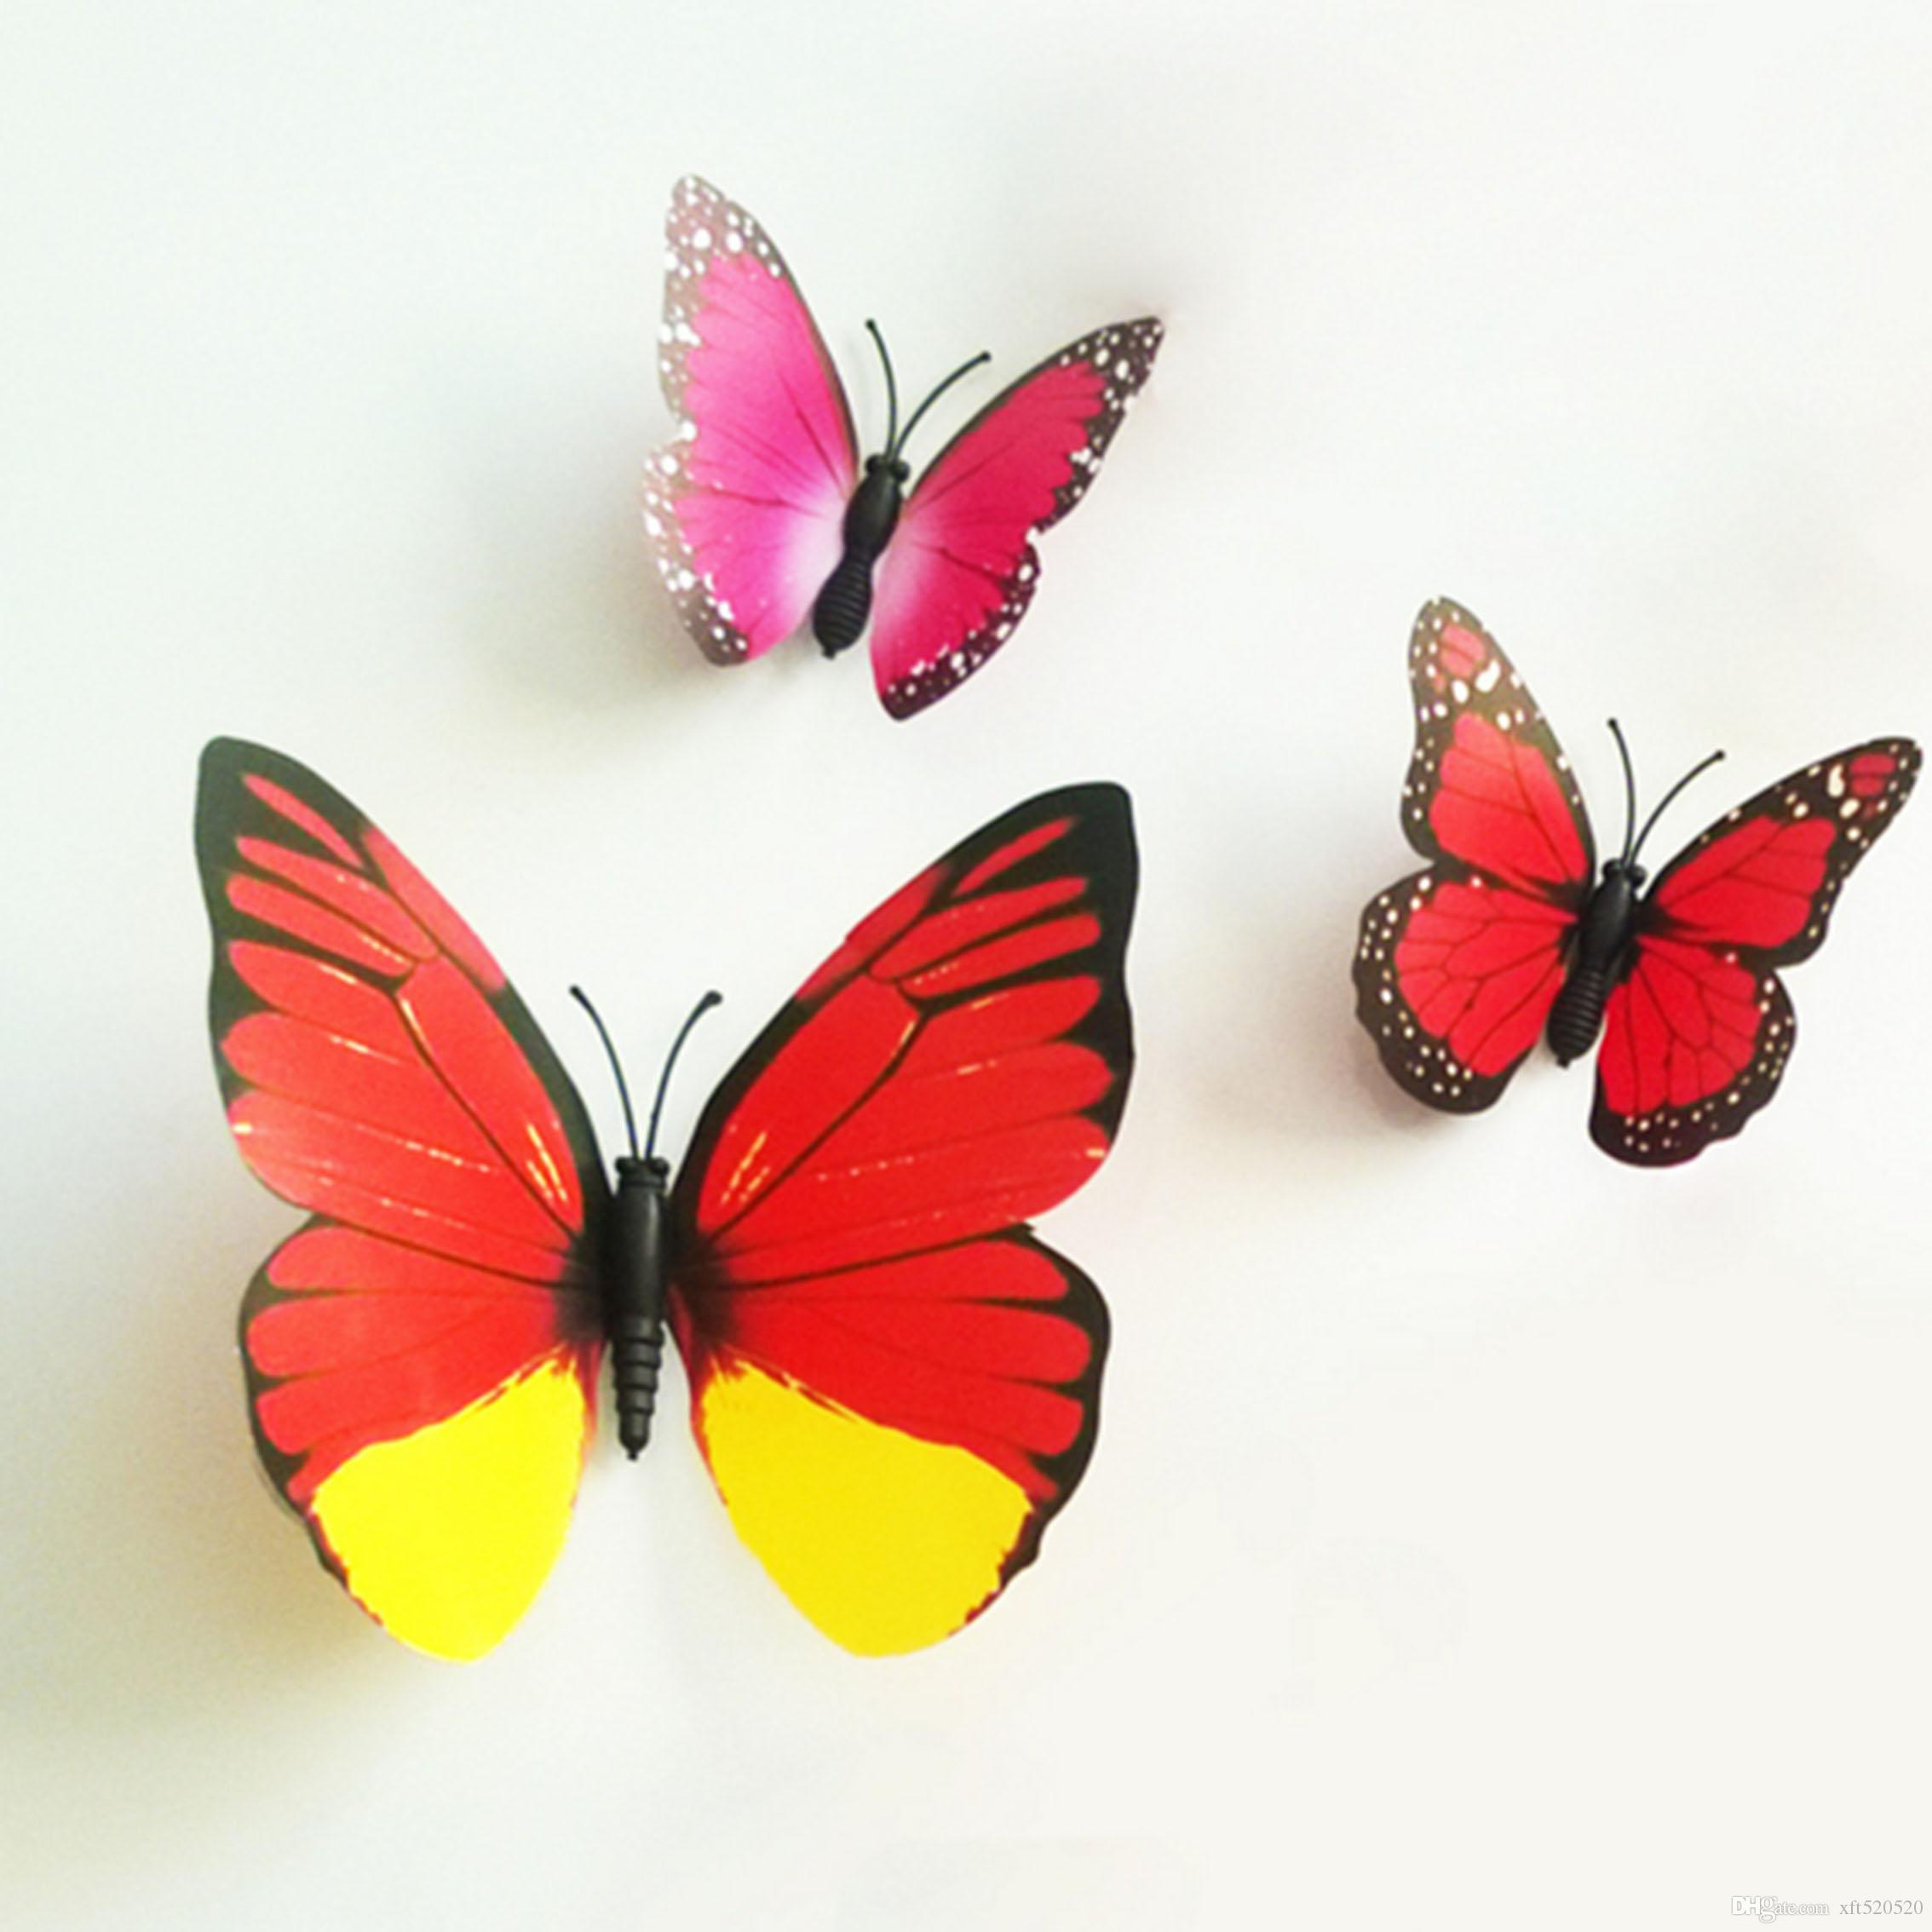 Colorful Design Art 3d Butterfly Wall Stickers Wall Decor Plastic Magnet  Kids Wall Stickers Adesivo Parede Kids Wall Decor Stickers Kids Wall Sticker  From ... Part 20